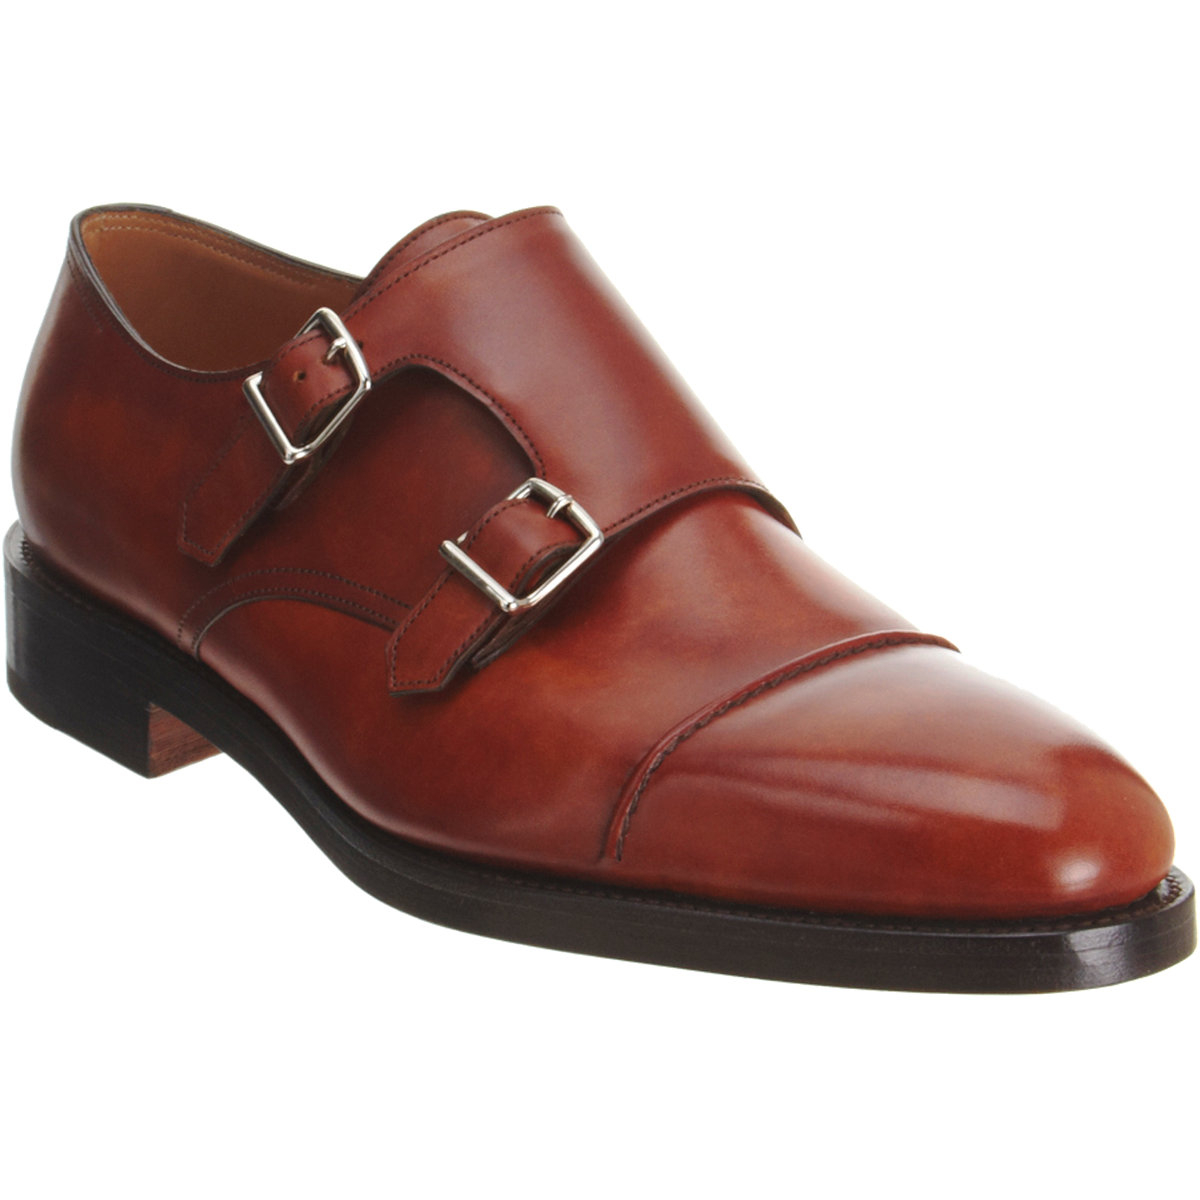 John Lobb Shoes >> Lyst - John Lobb William Ii Double-Monk Shoes in Brown for Men